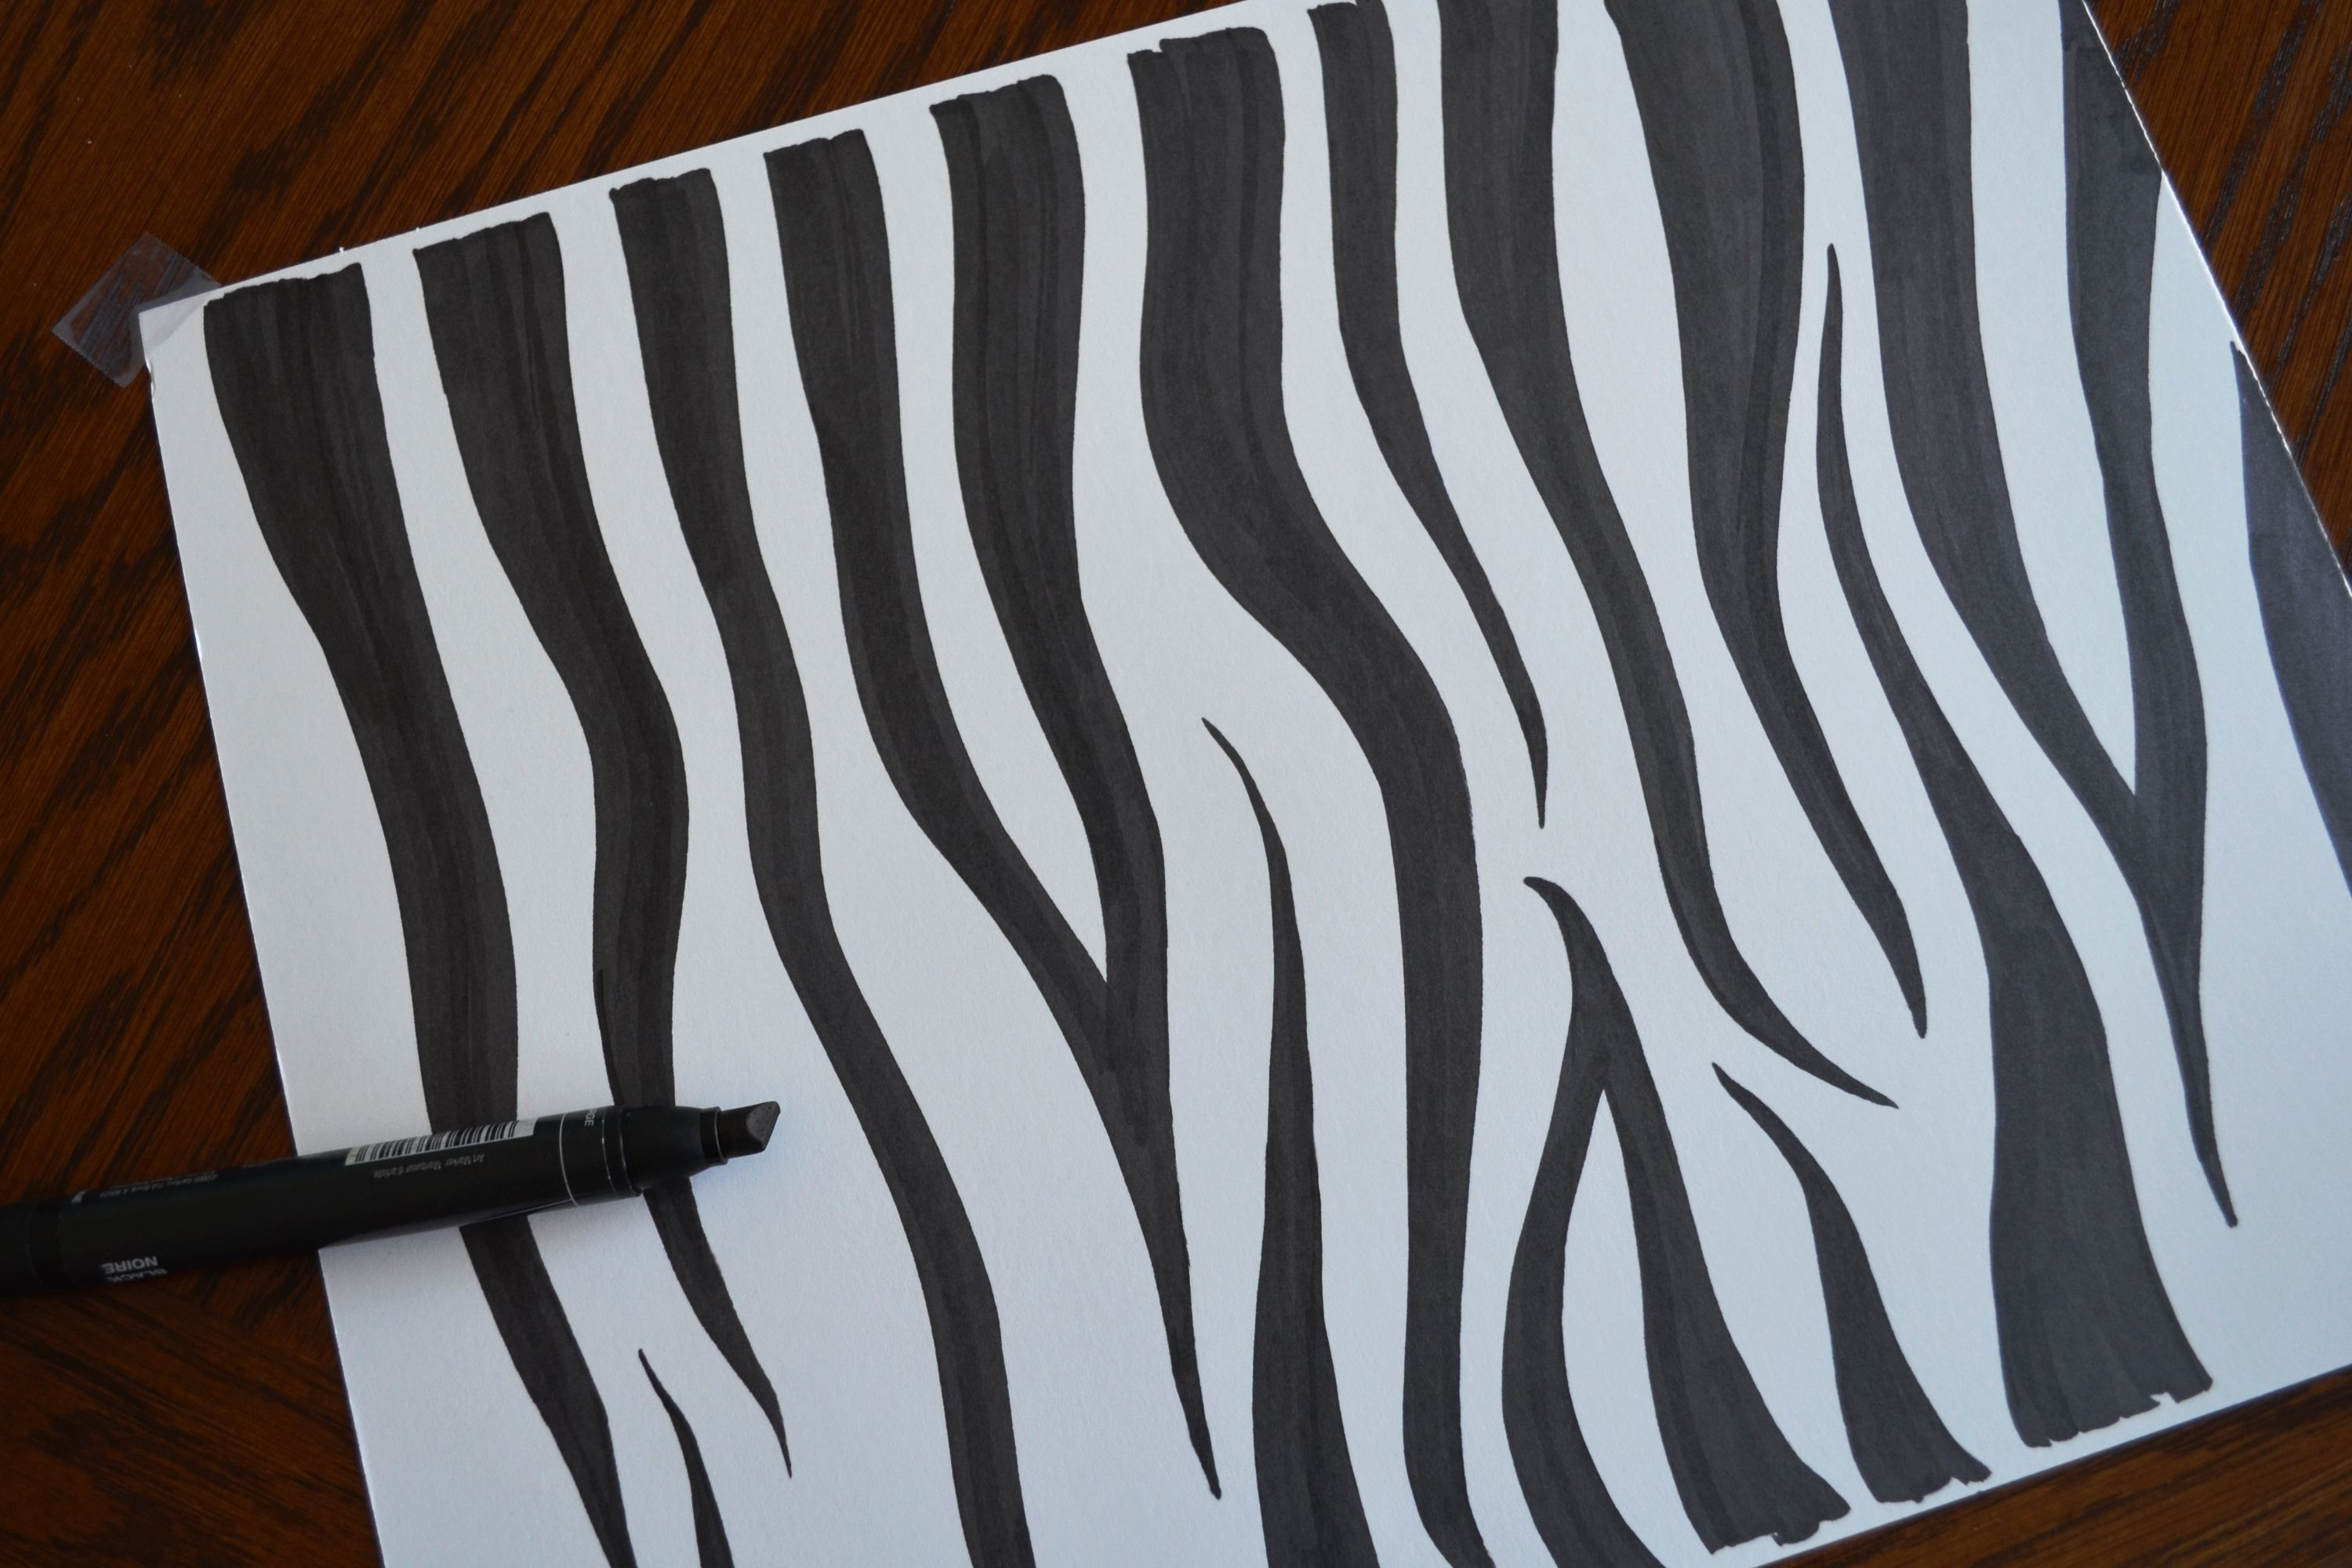 How To Draw Zebra Print Zebra Drawing Zebra Print Cool